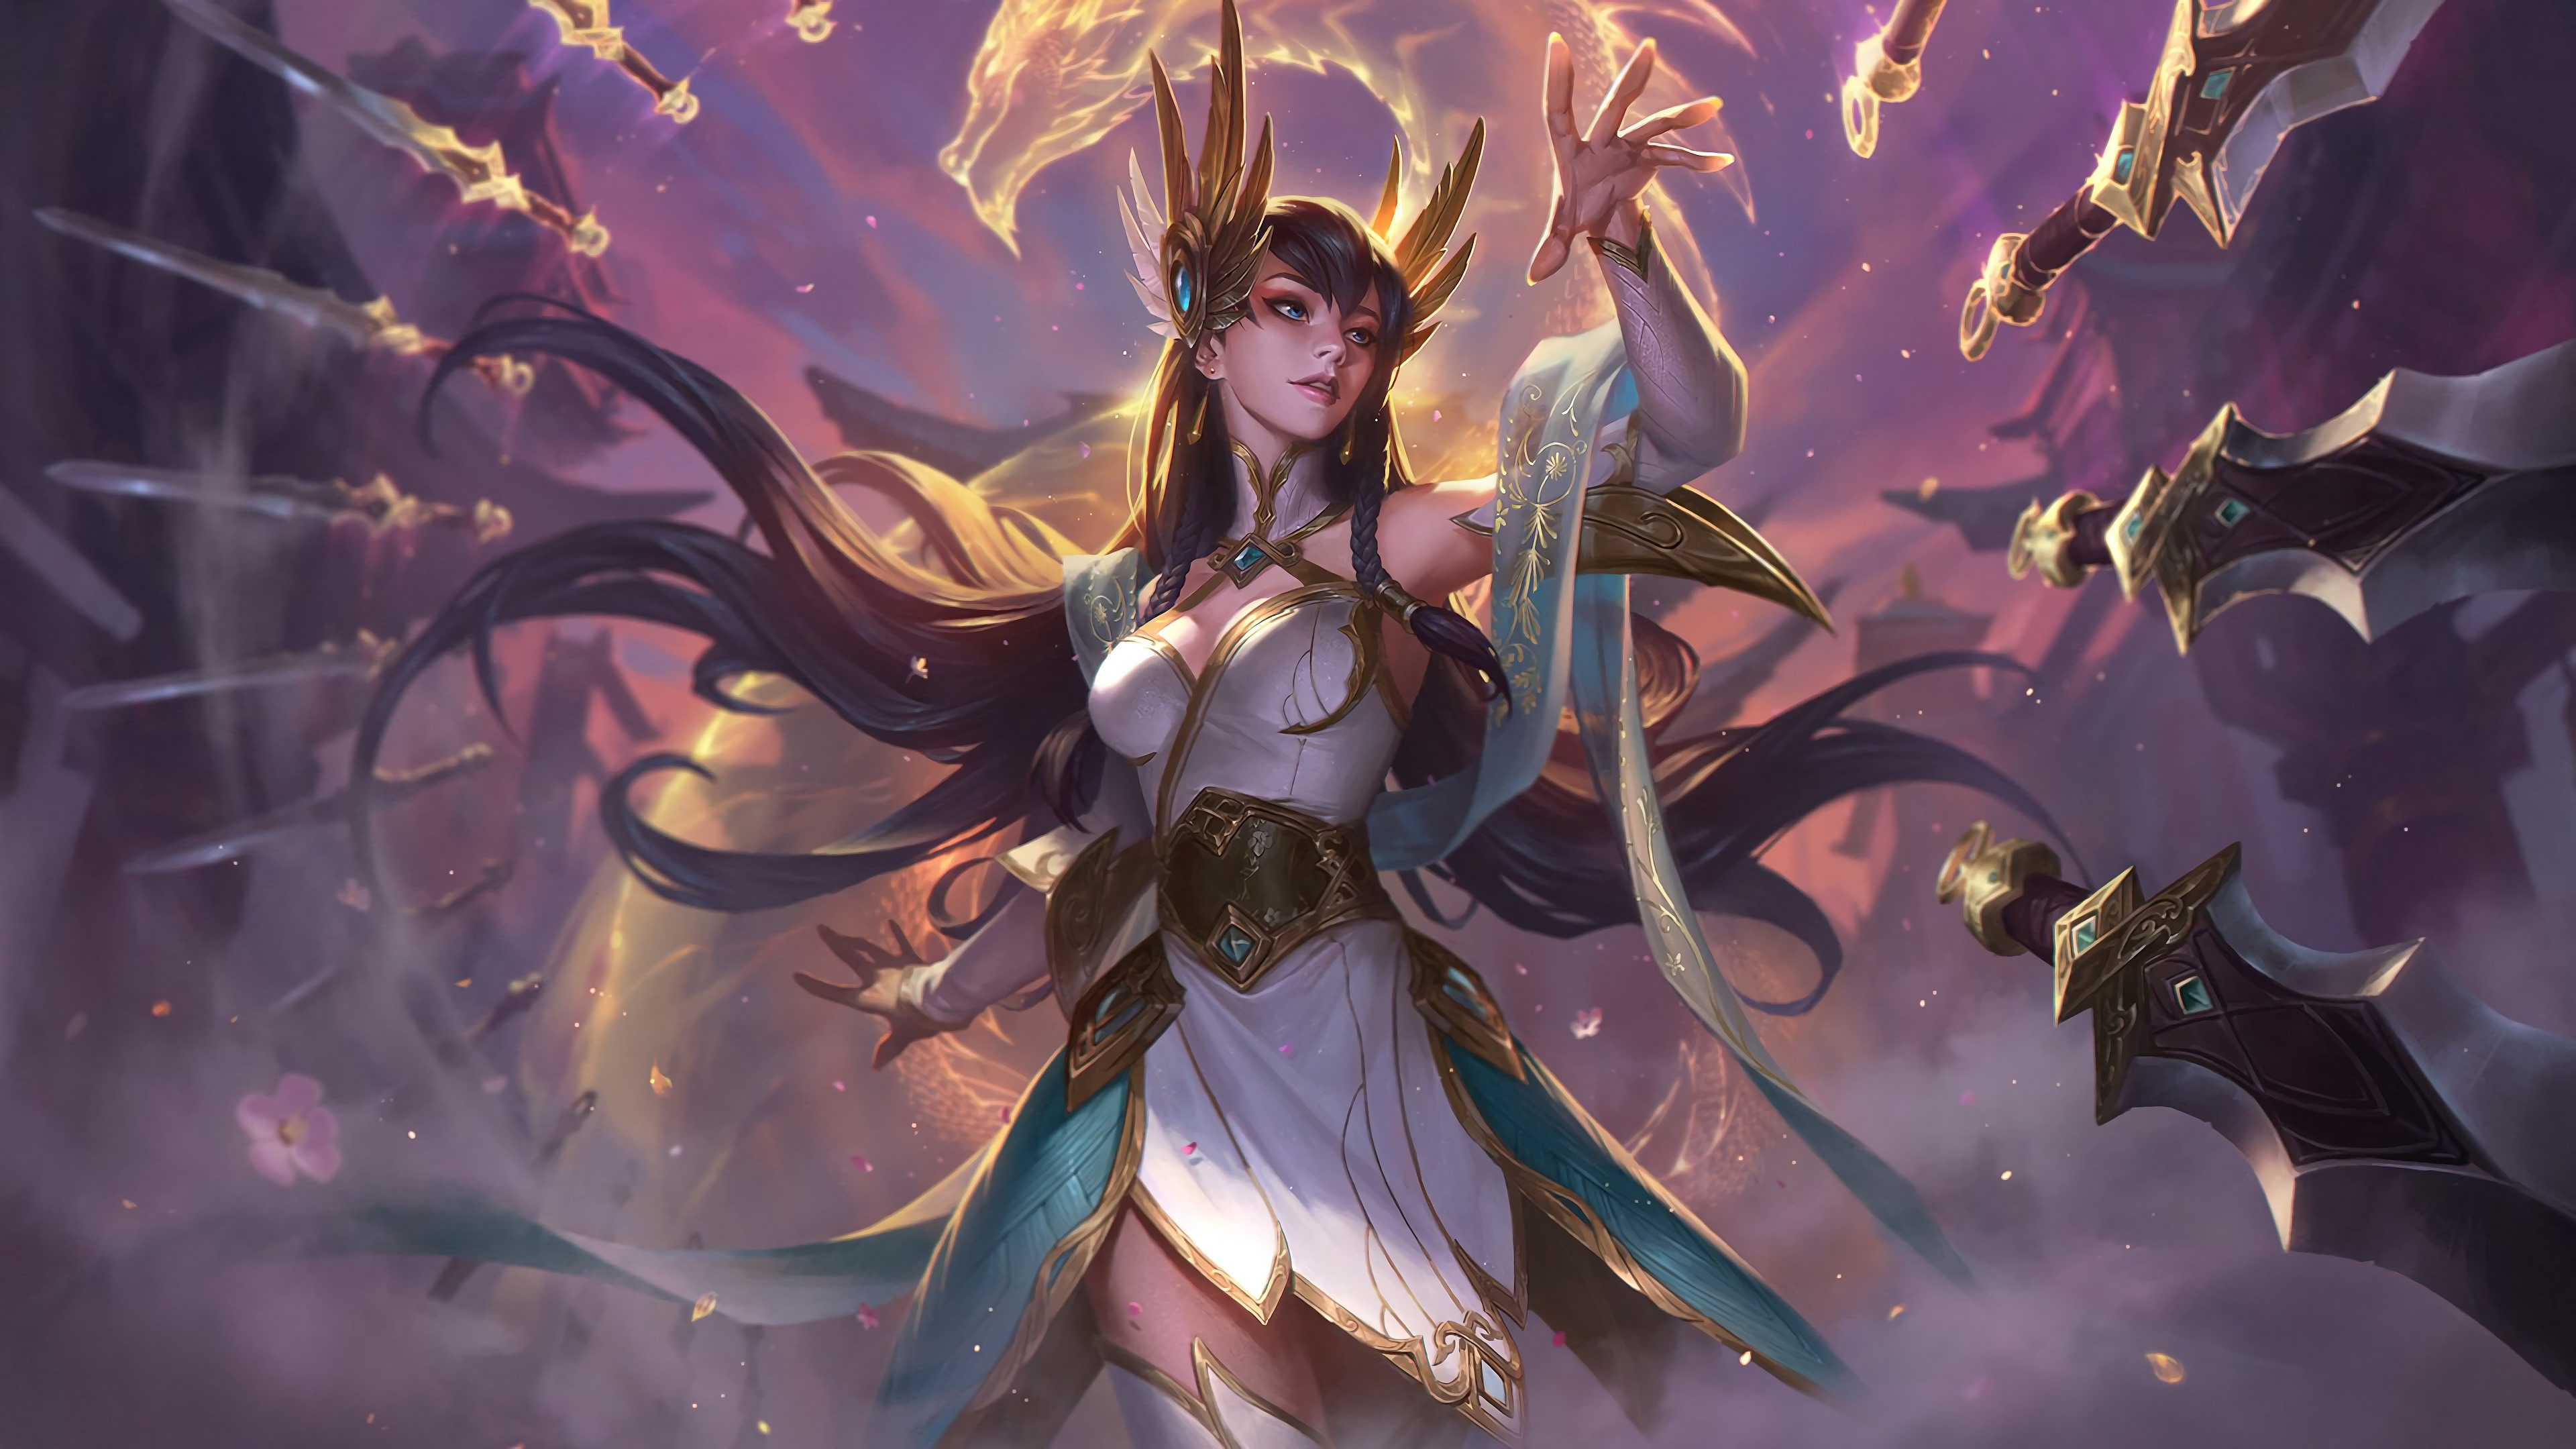 Wallpaper League Of Legends Beautiful Girl Hand Sword 3840x2160 Uhd 4k Picture Image